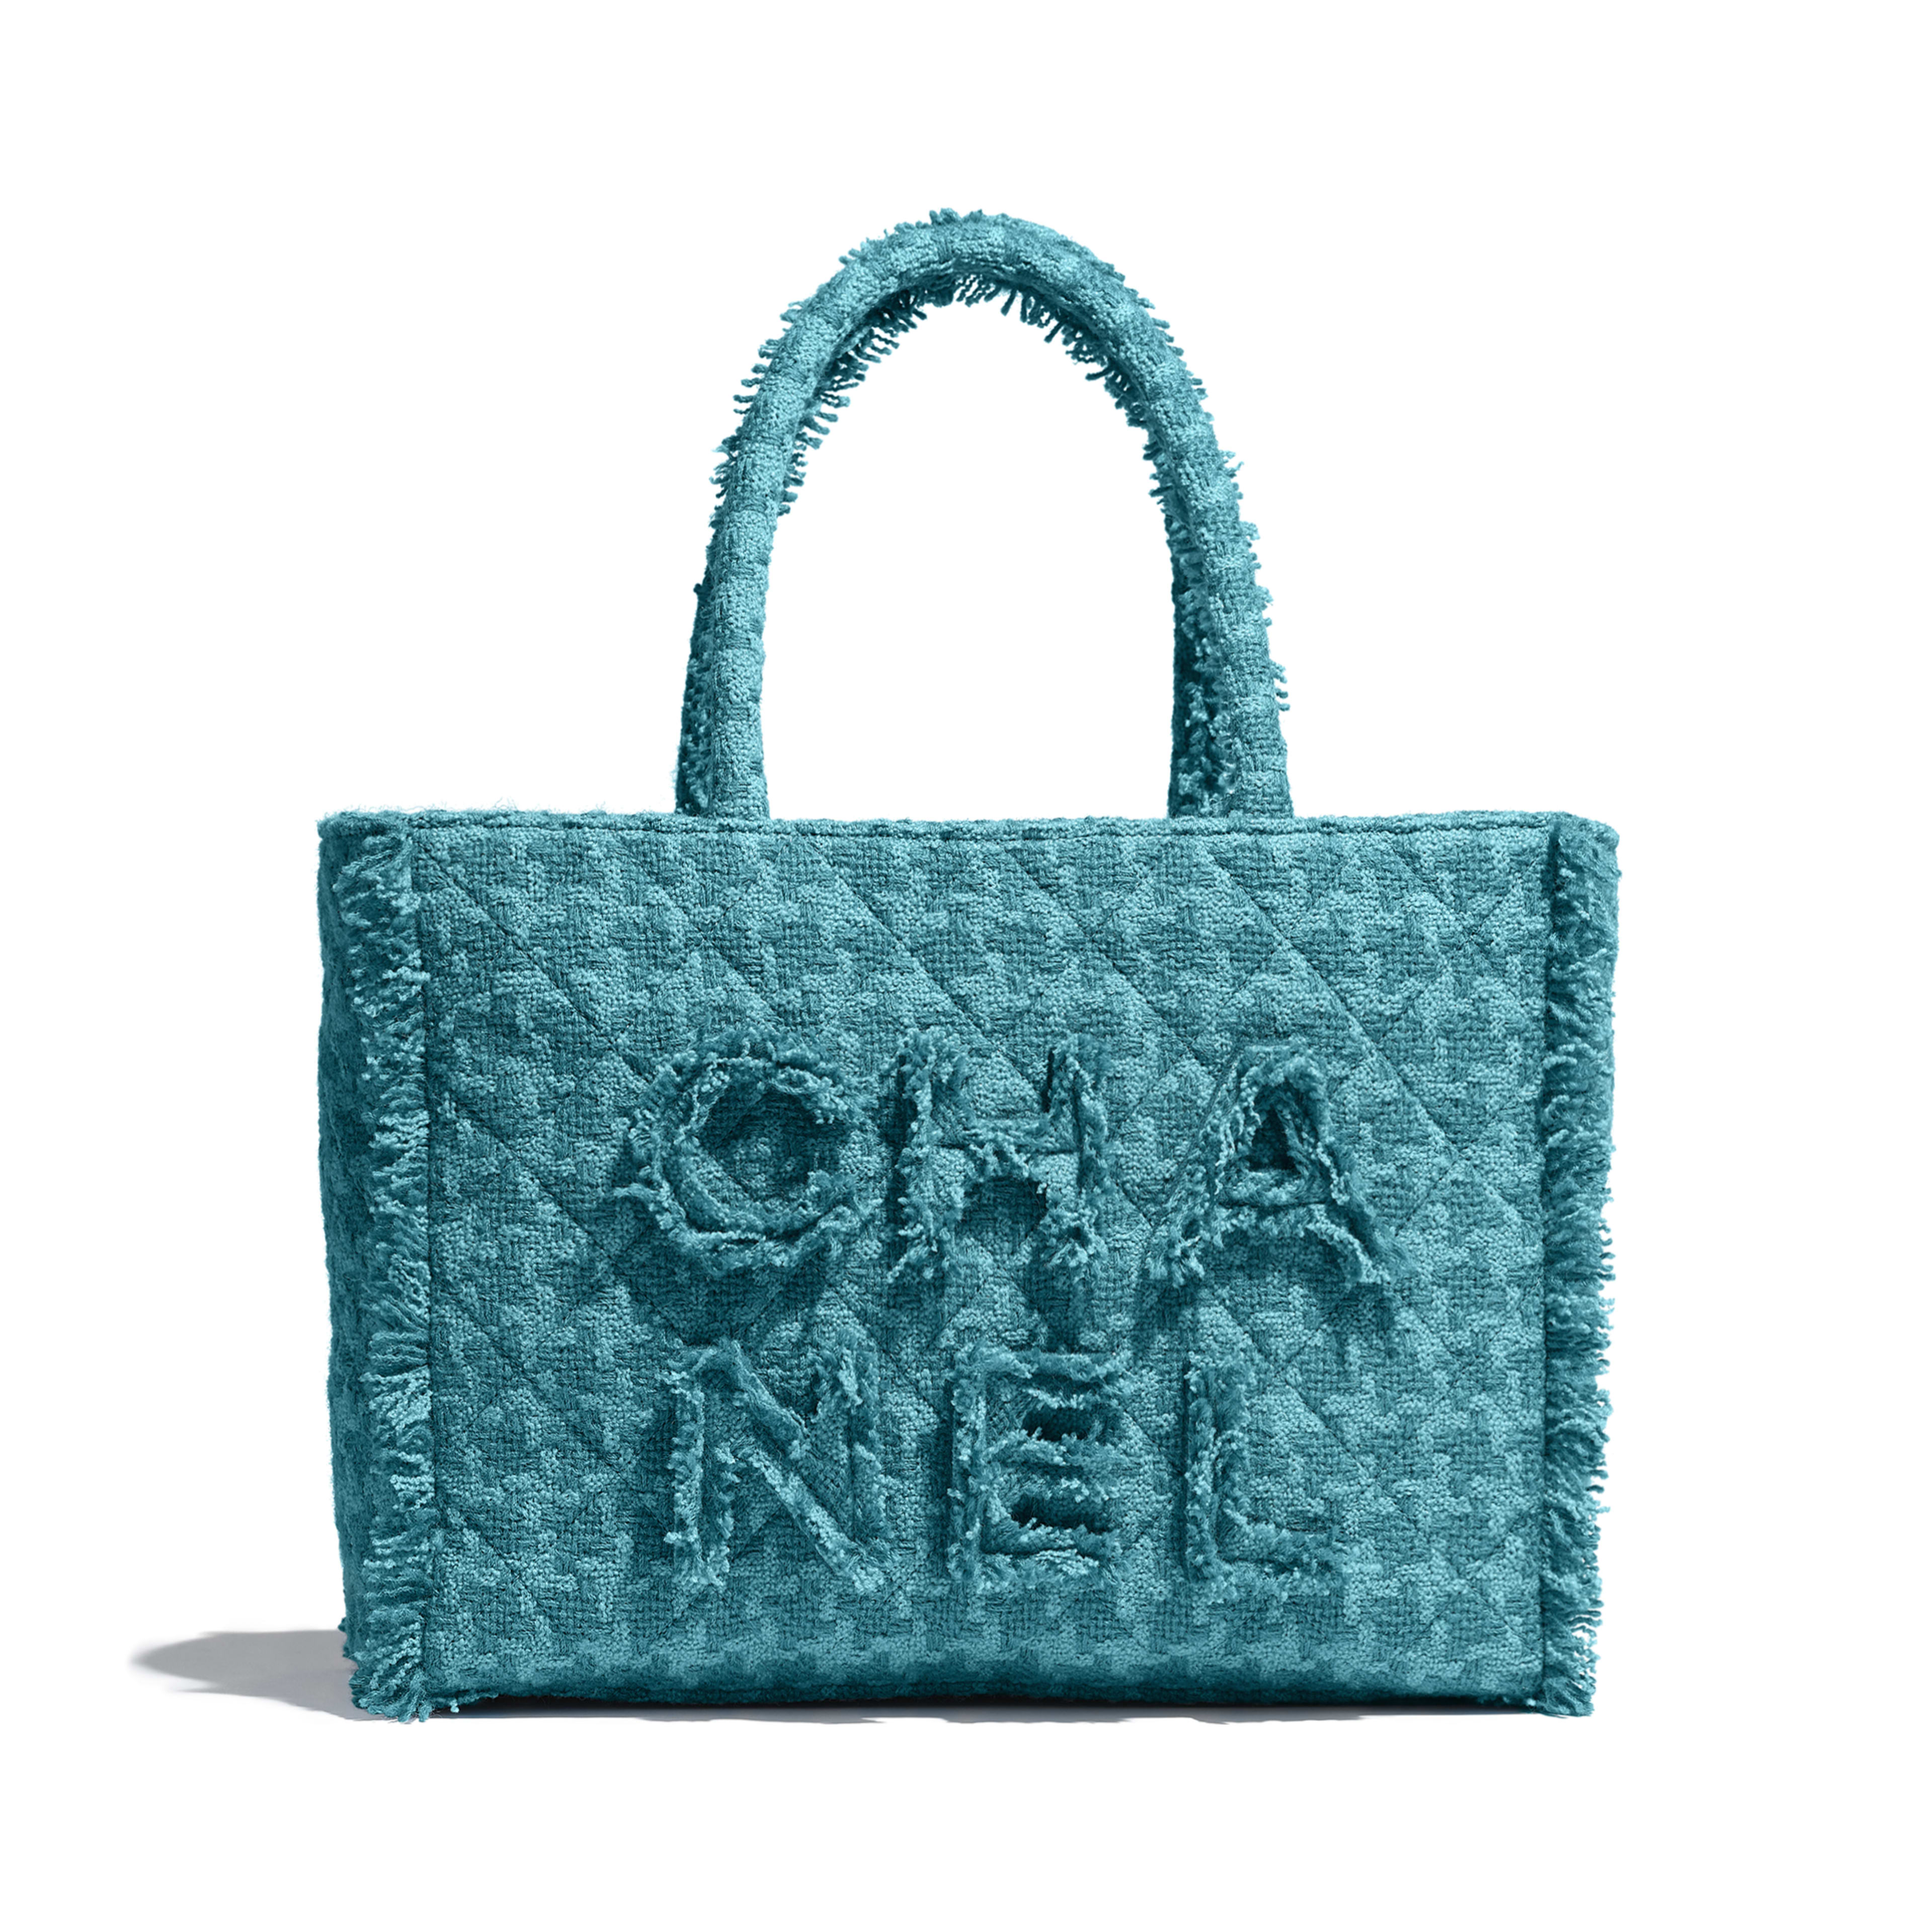 Zipped Shopping Bag - Turquoise - Wool Tweed & Gold-Tone Metal - Default view - see full sized version